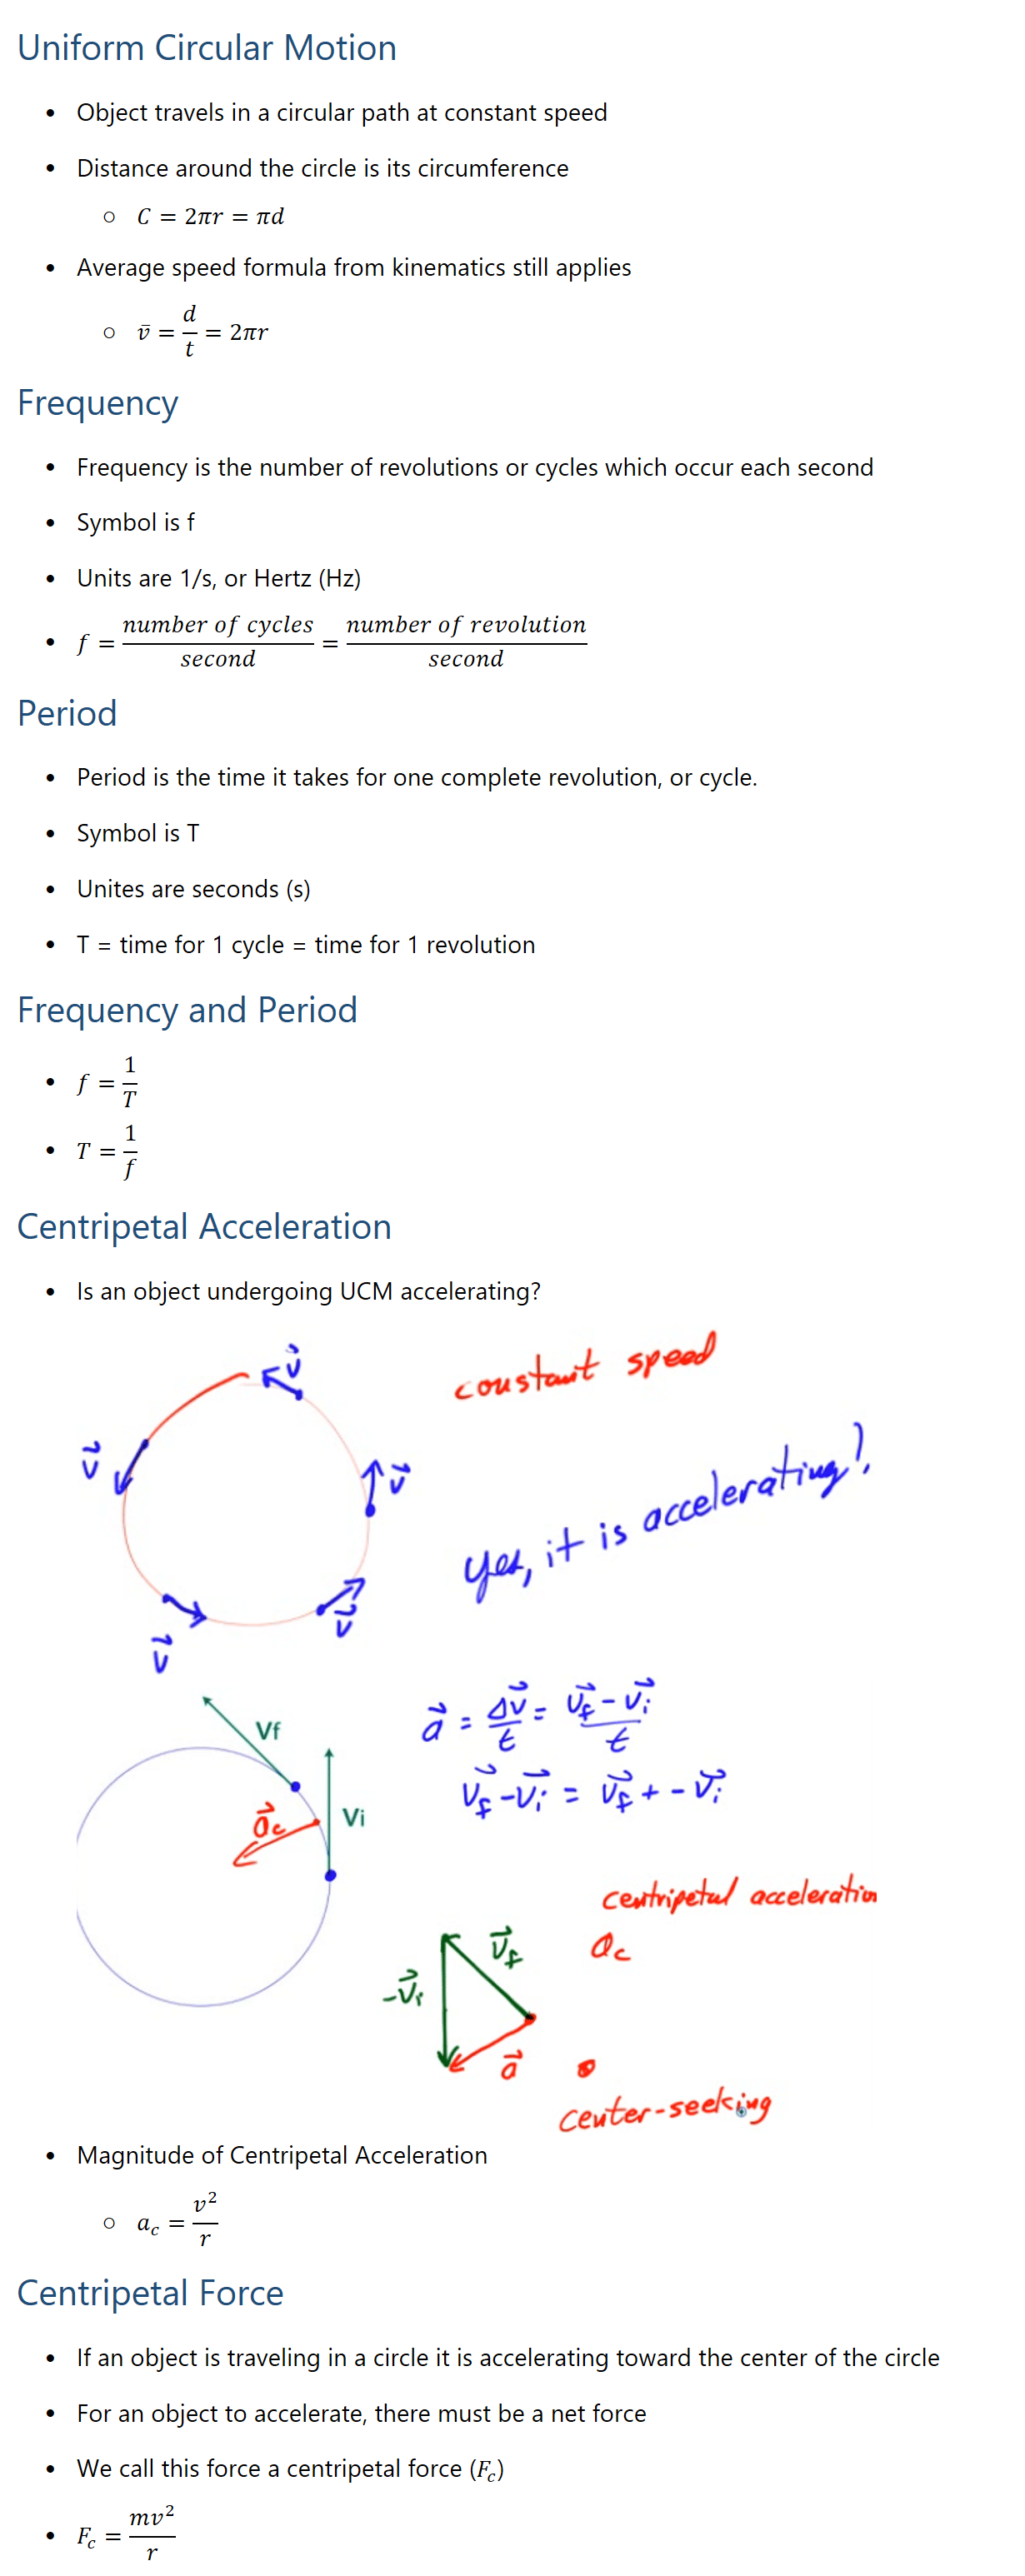 Uniform Circular Motion • Object travels in a circular path at constant speed • Distance around the circle is its circumference ○ C=2πr=πd • Average speed formula from kinematics still applies ○ v ̅=d/t=2πr Frequency • Frequency is the number of revolutions or cycles which occur each second • Symbol is f • Units are 1/s, or Hertz (Hz) • f=(number of cycles)/second=(number of revolution)/second Period • Period is the time it takes for one complete revolution, or cycle. • Symbol is T • Unites are seconds (s) • T = time for 1 cycle = time for 1 revolution Frequency and Period • f=1/T • T=1/f Centripetal Acceleration • Is an object undergoing UCM accelerating? • Magnitude of Centripetal Acceleration ○ a_c=v^2/r Centripetal Force • If an object is traveling in a circle it is accelerating toward the center of the circle • For an object to accelerate, there must be a net force • We call this force a centripetal force (F_c) • F_c=(mv^2)/r